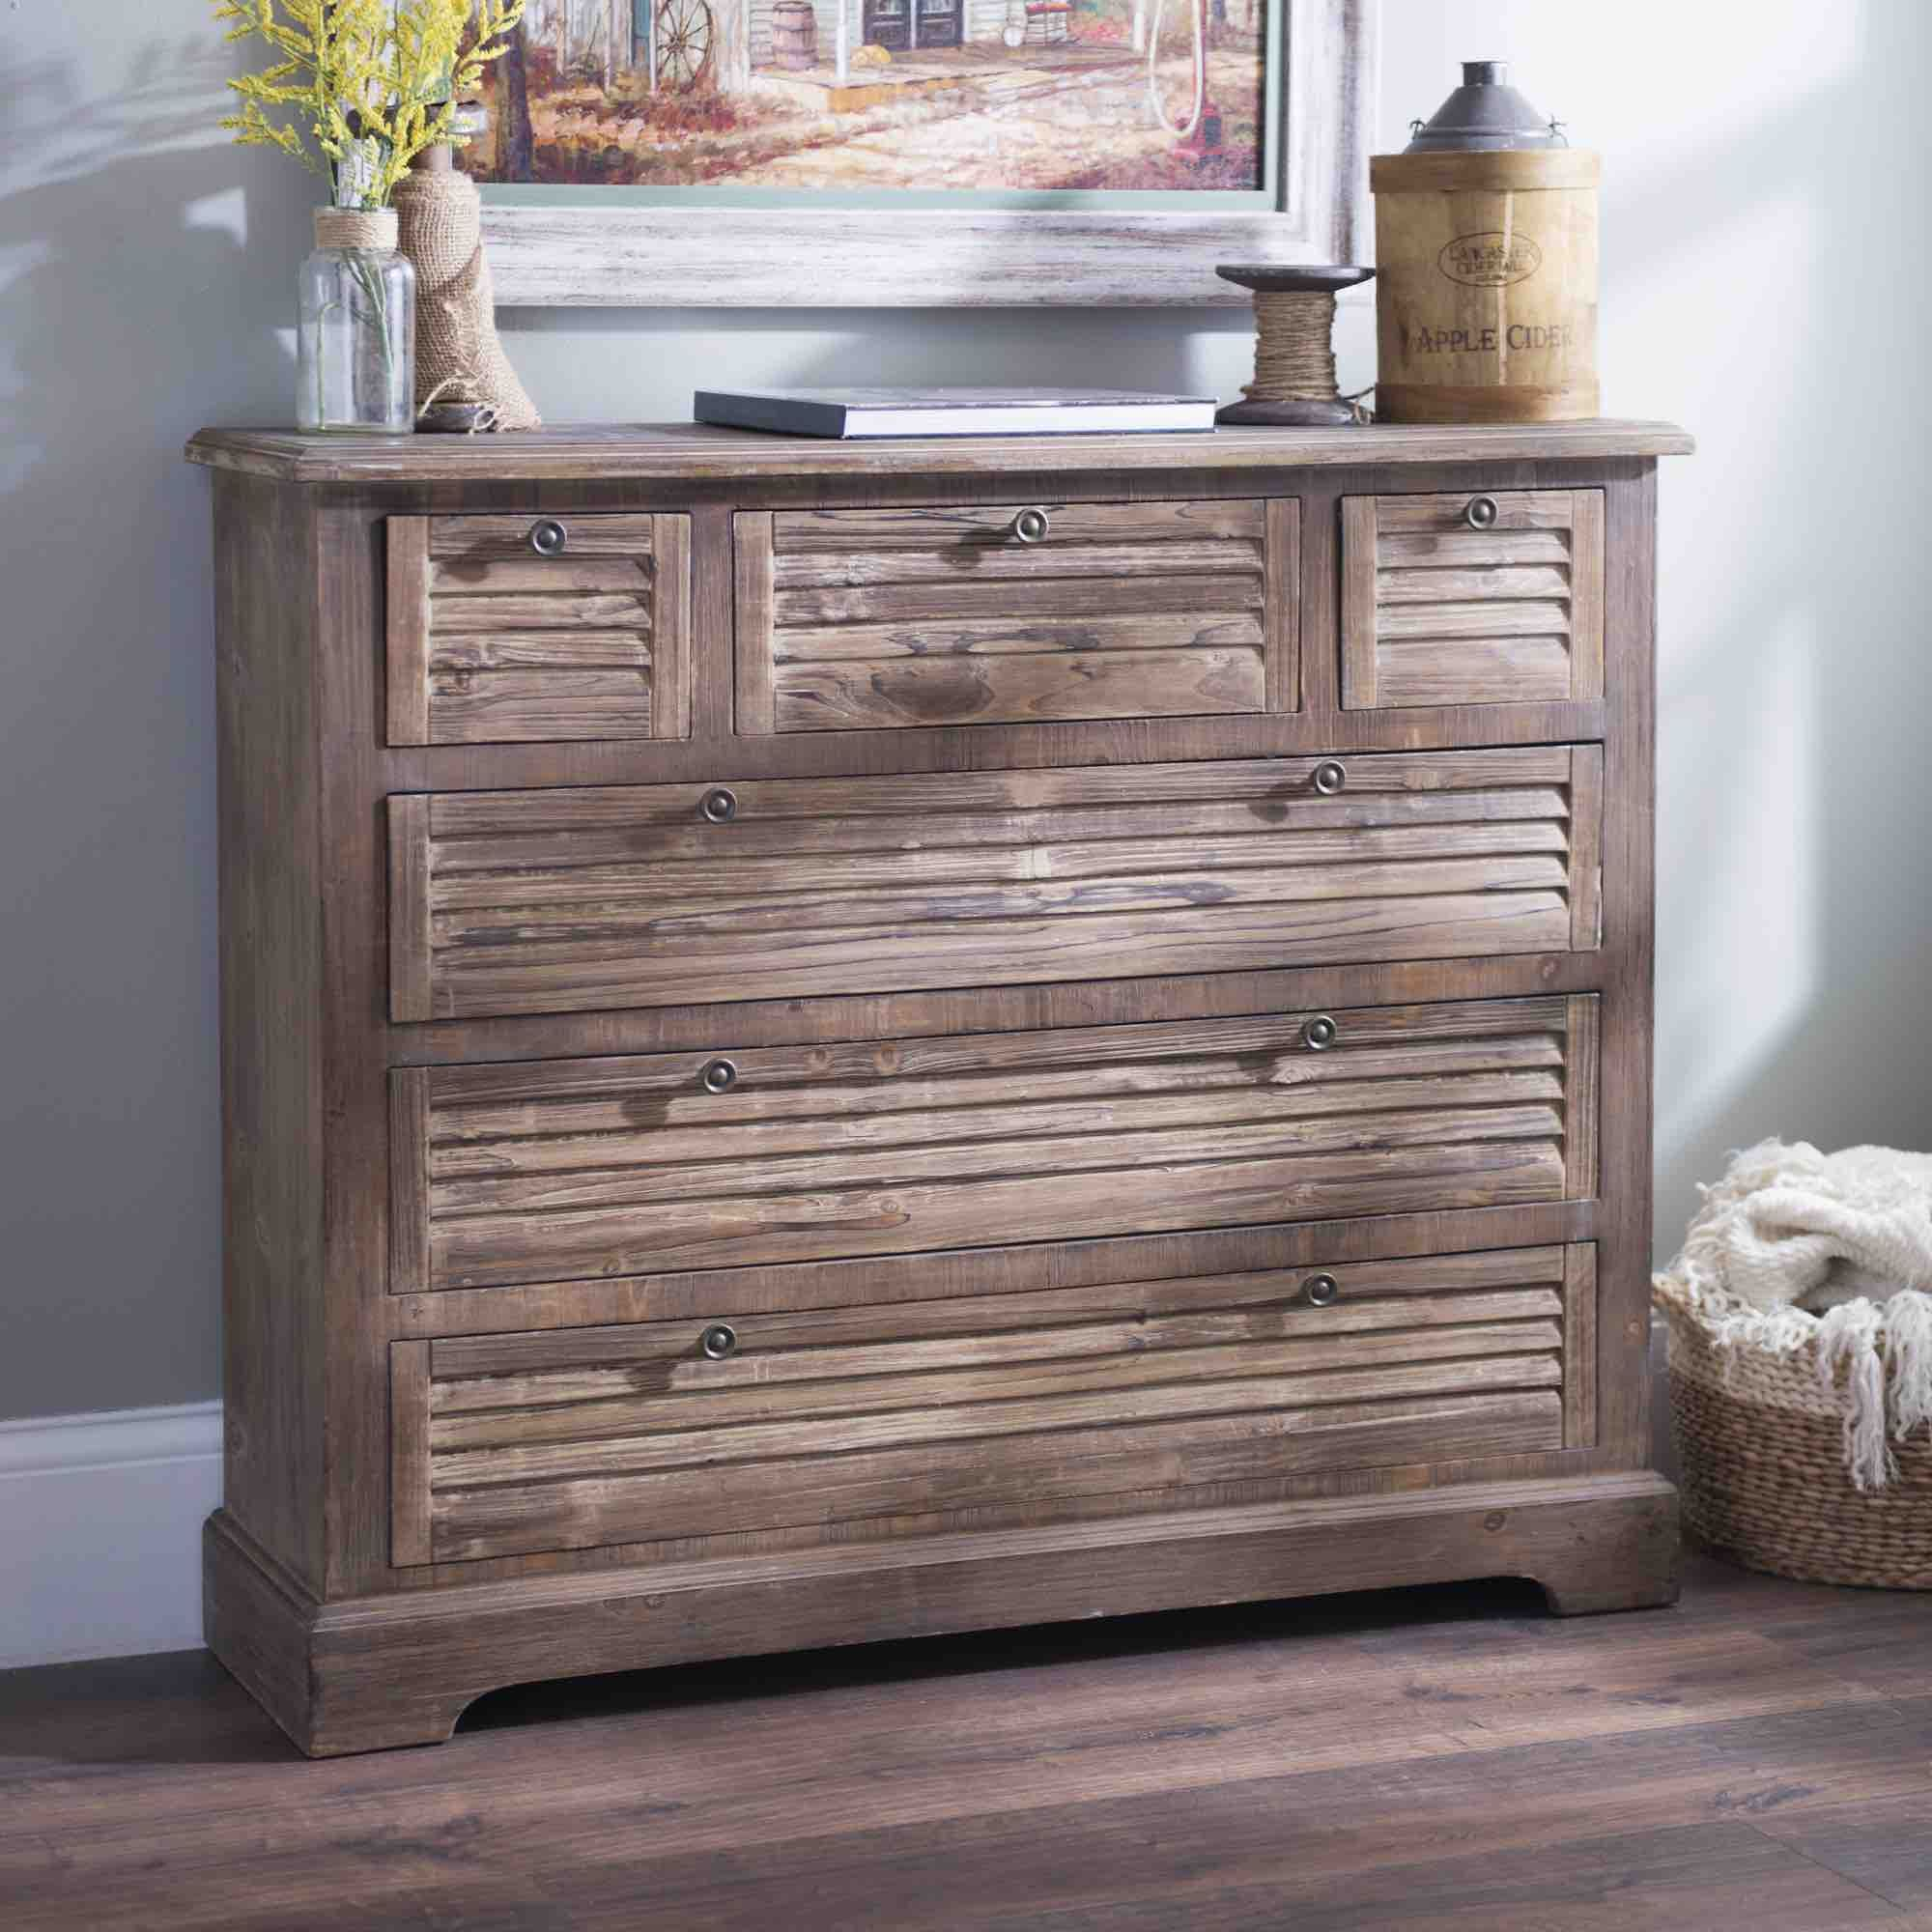 accent table chests argos tall ott target black convenience metal sims factorio white furniture wicker eso omara thresholdtm tel threshold bench storage concepts var marble full